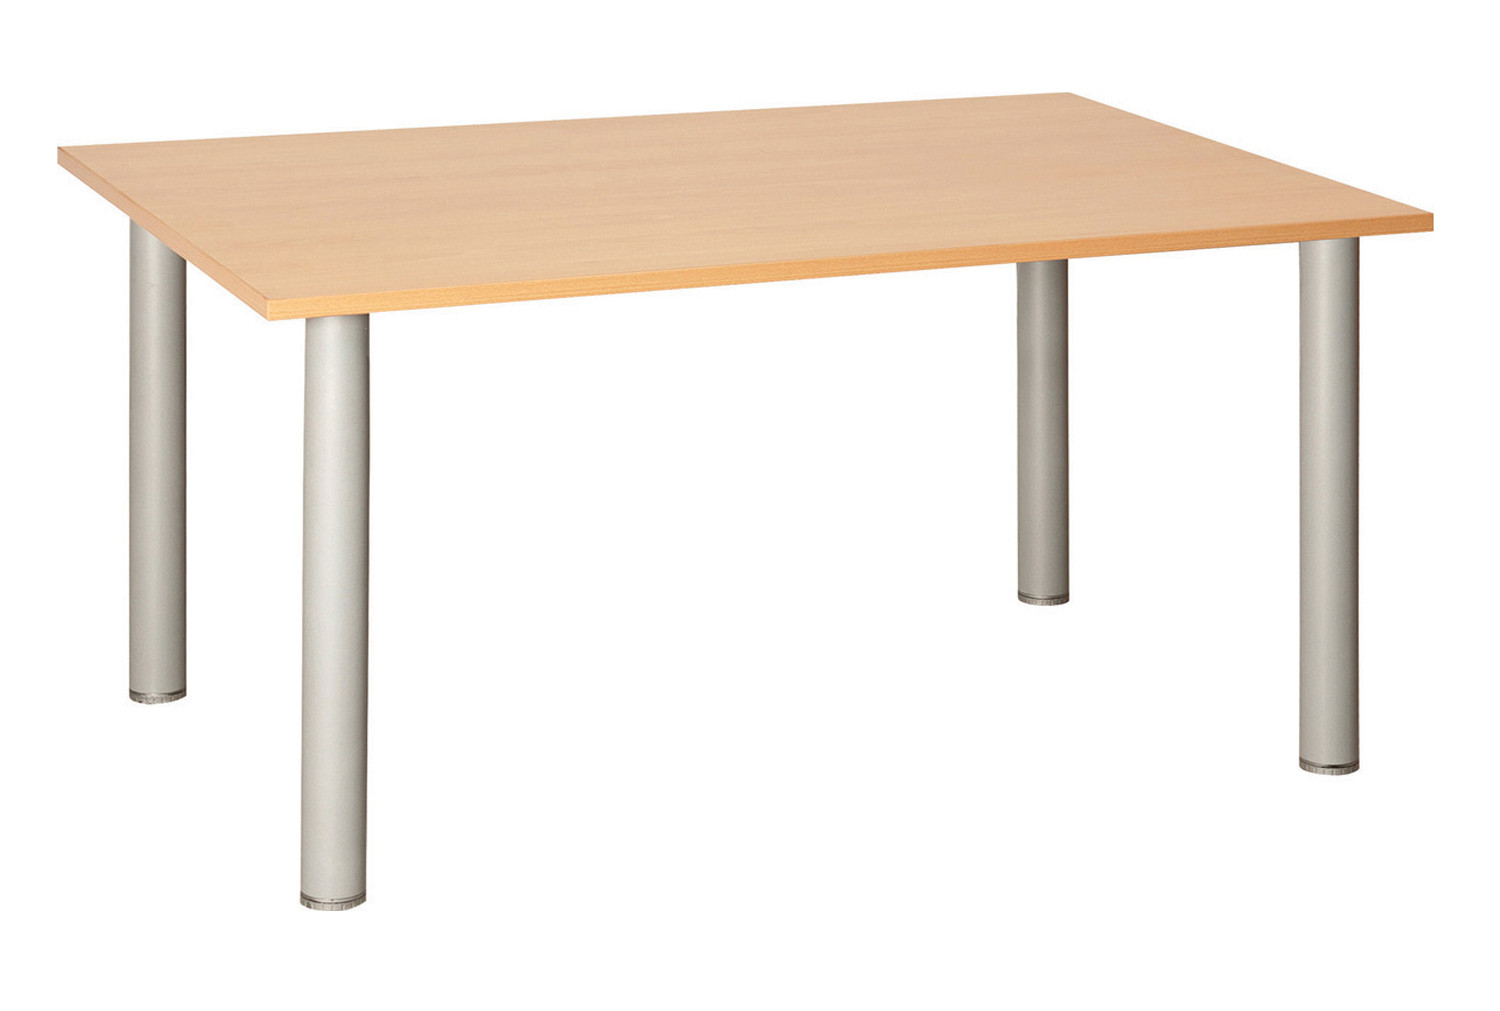 Proteus rectangular meeting table